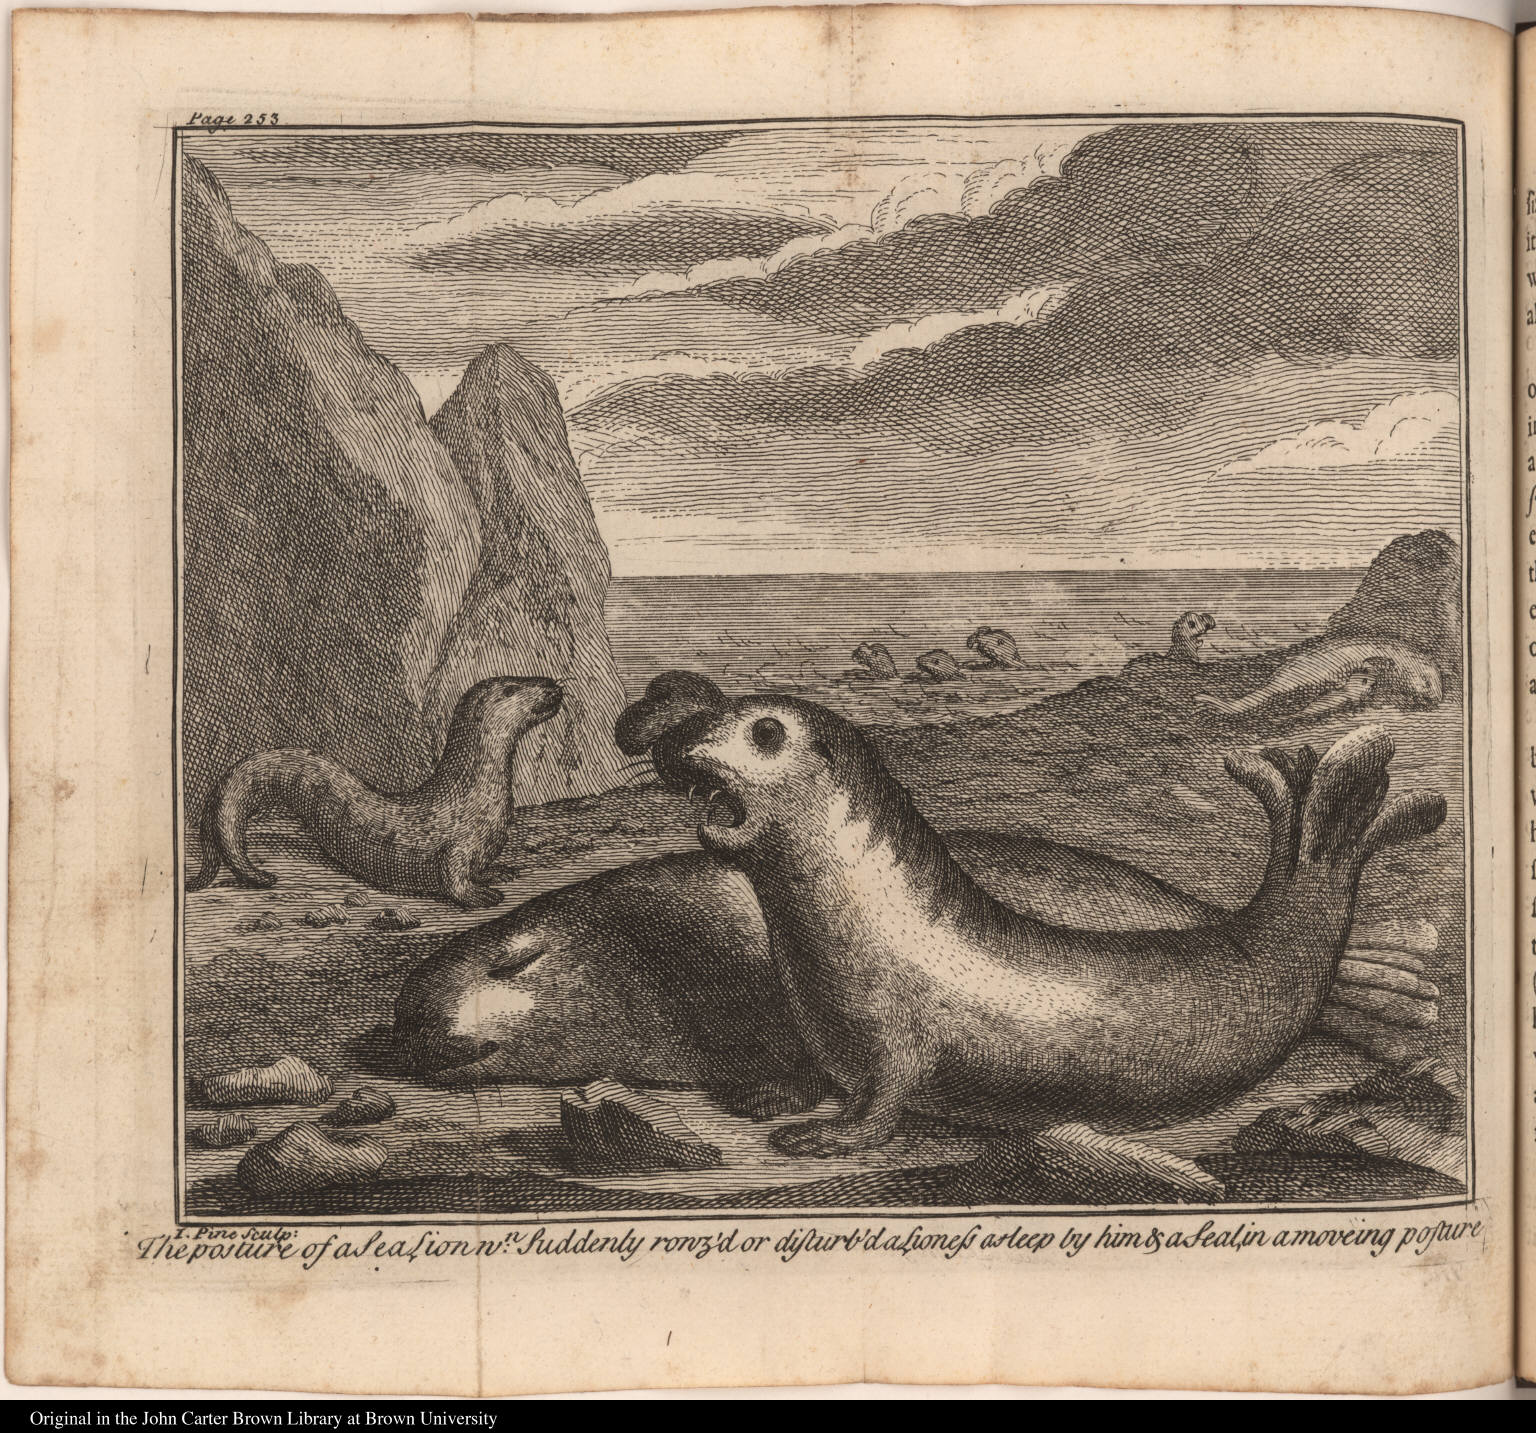 The posture of a Sea Lion wn. Suddenly rouz'd or disturb'd a Lioness asleep by him & a Seal, in a moveing posture